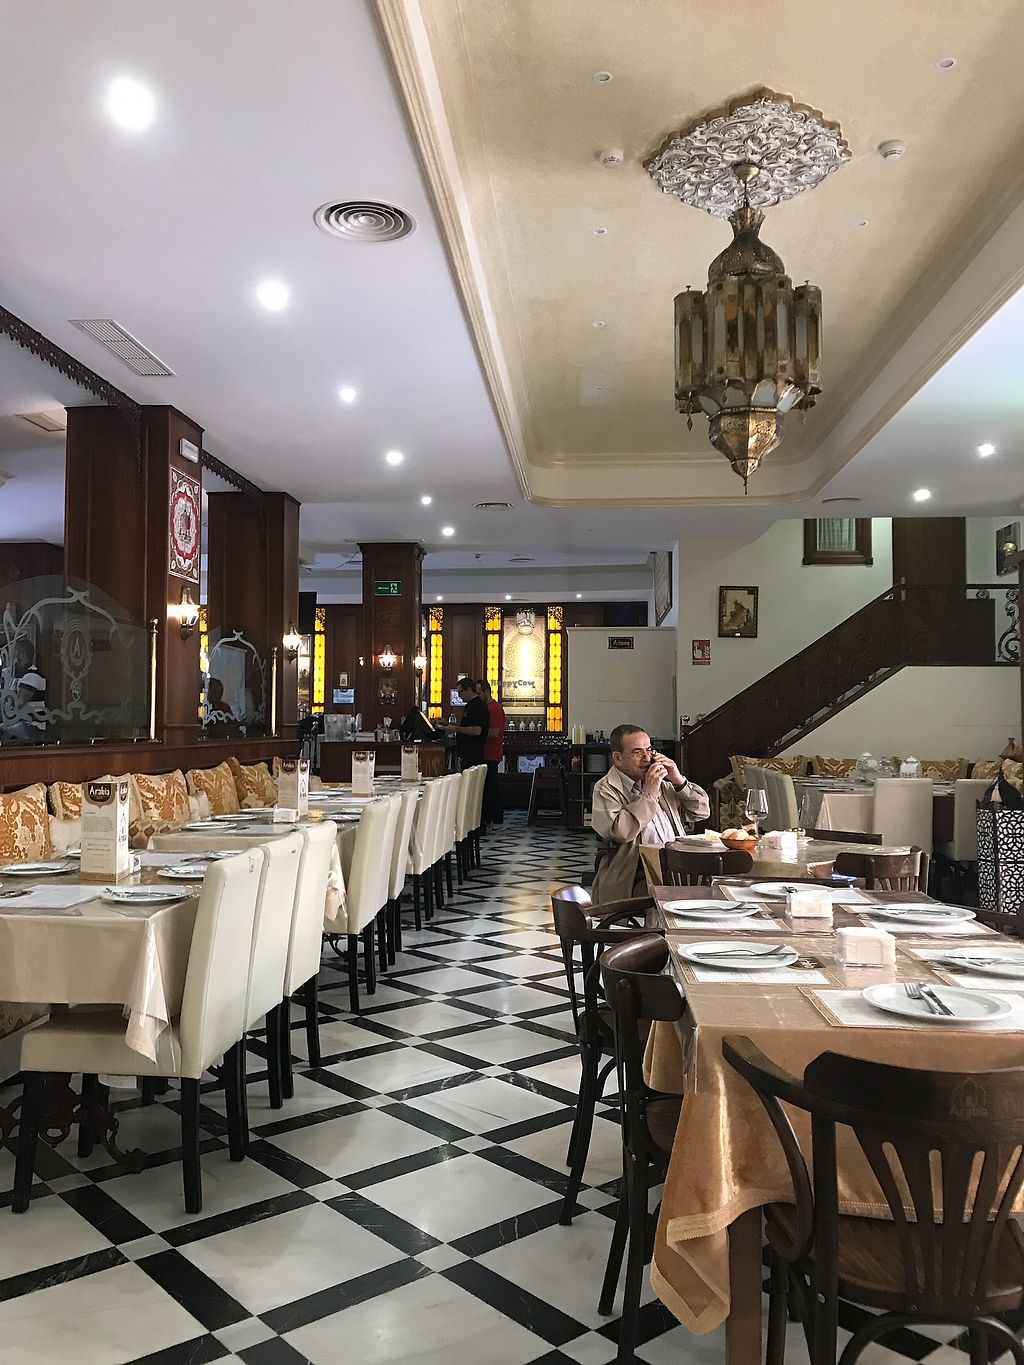 """Photo of Arabia Restaurante  by <a href=""""/members/profile/RonaldFerree"""">RonaldFerree</a> <br/>Full view <br/> October 22, 2017  - <a href='/contact/abuse/image/75029/317660'>Report</a>"""